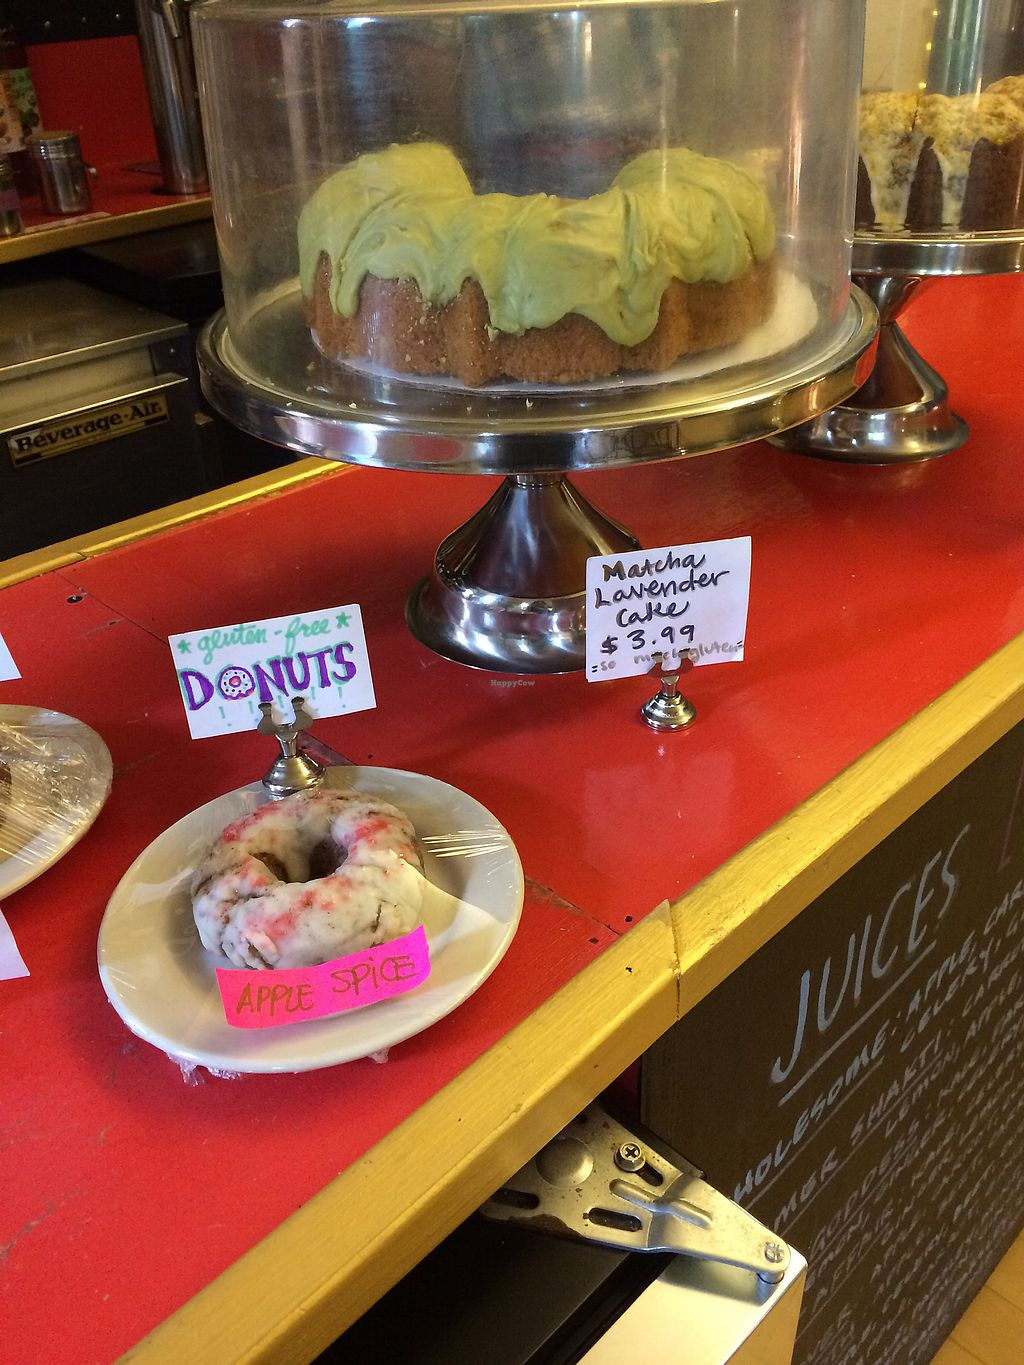 """Photo of Good Karma Cafe  by <a href=""""/members/profile/KatieBush"""">KatieBush</a> <br/>fresh baked goods up front <br/> October 6, 2017  - <a href='/contact/abuse/image/53789/312468'>Report</a>"""